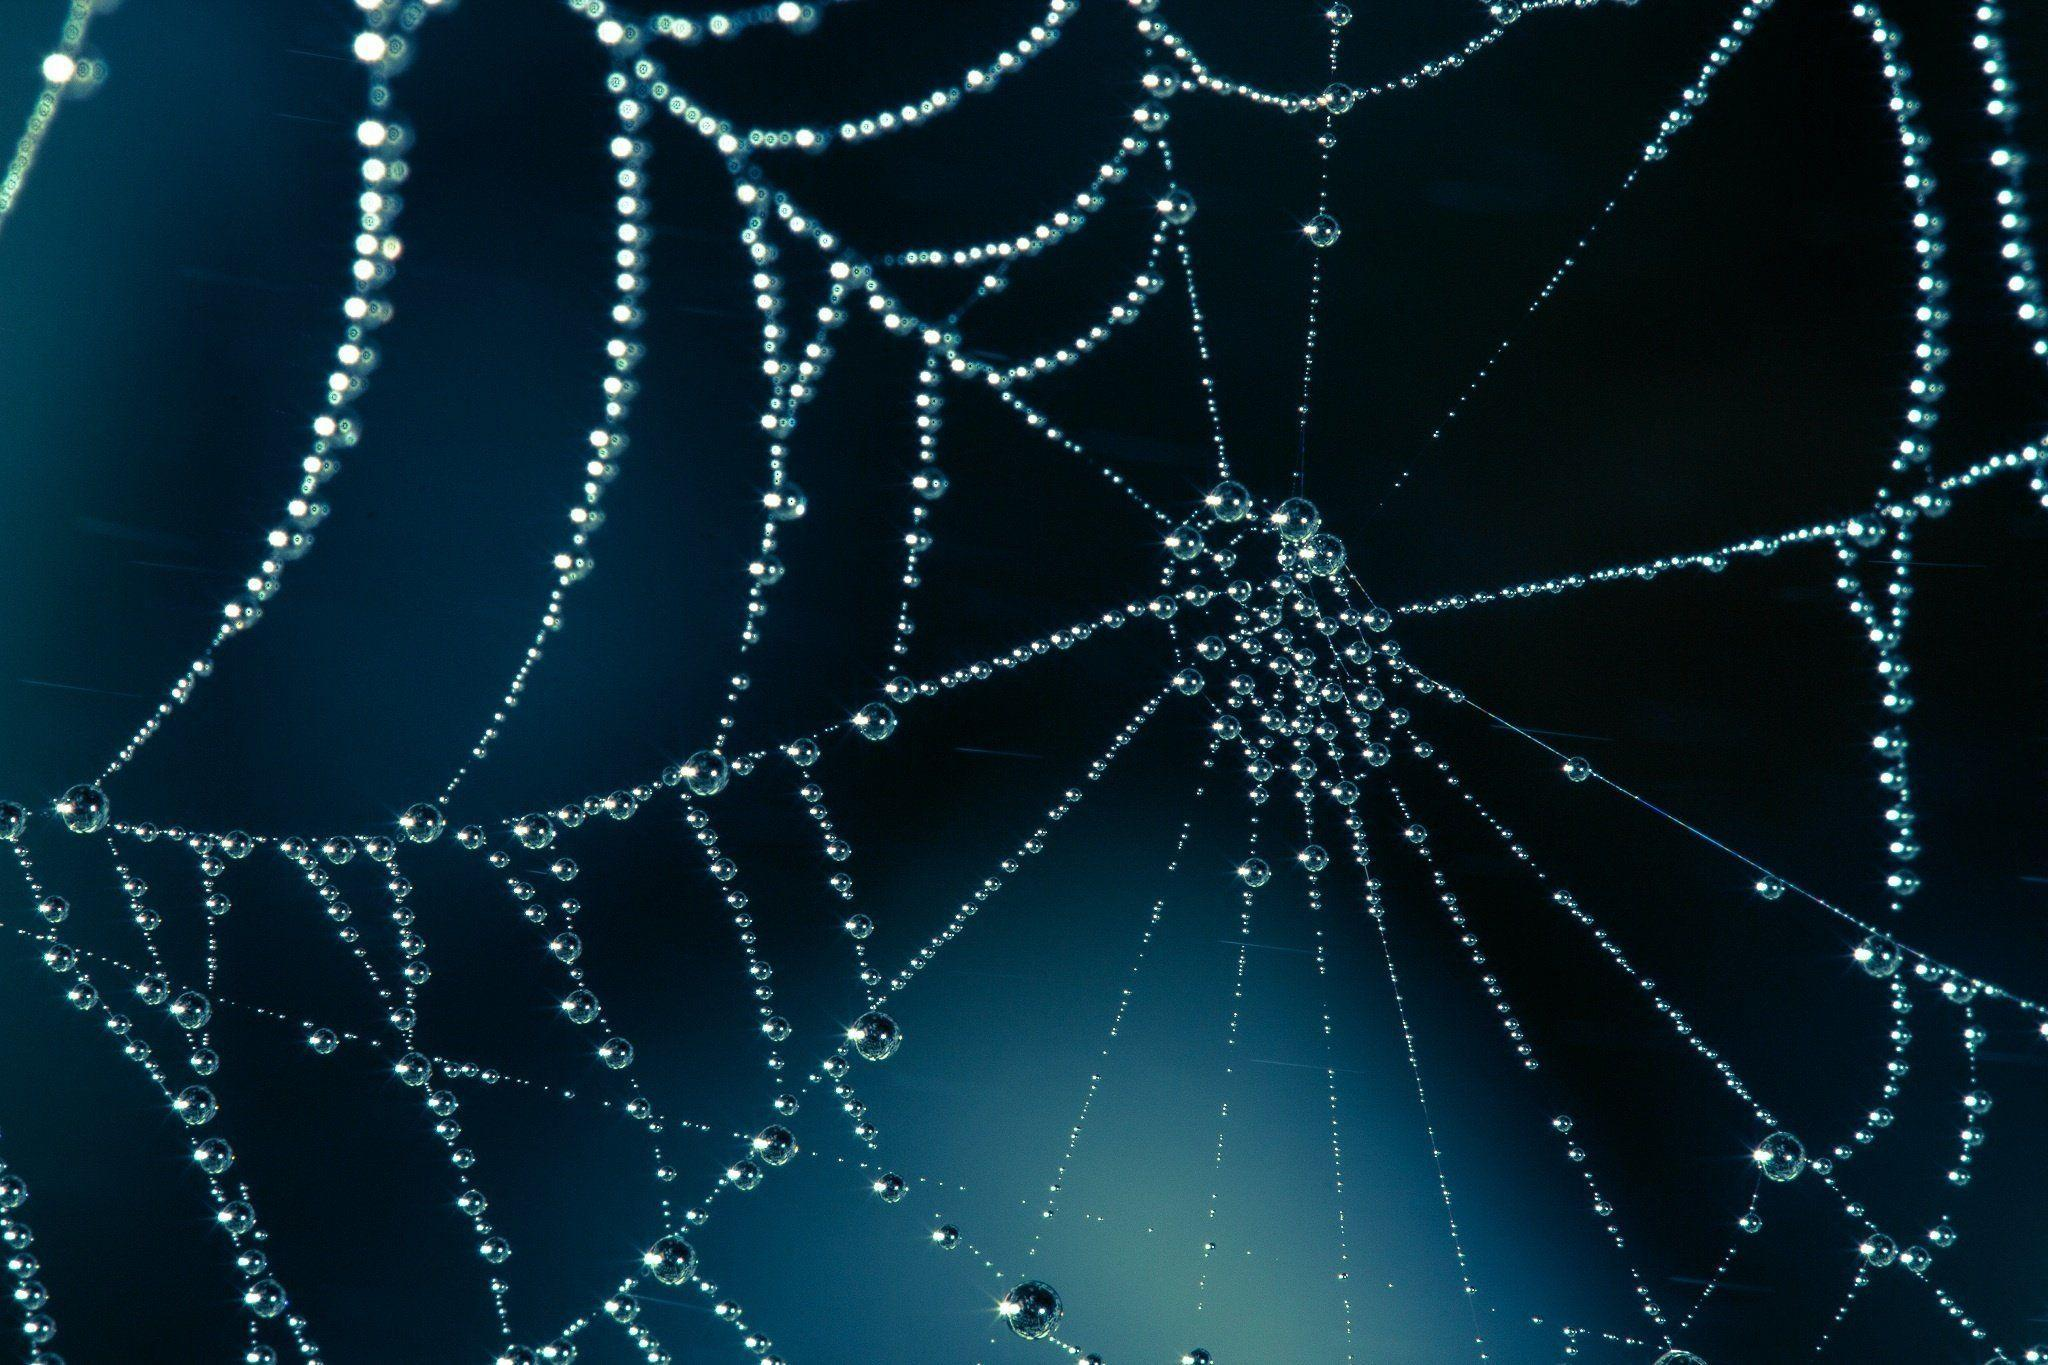 Spider Web Backgrounds 2048x1365